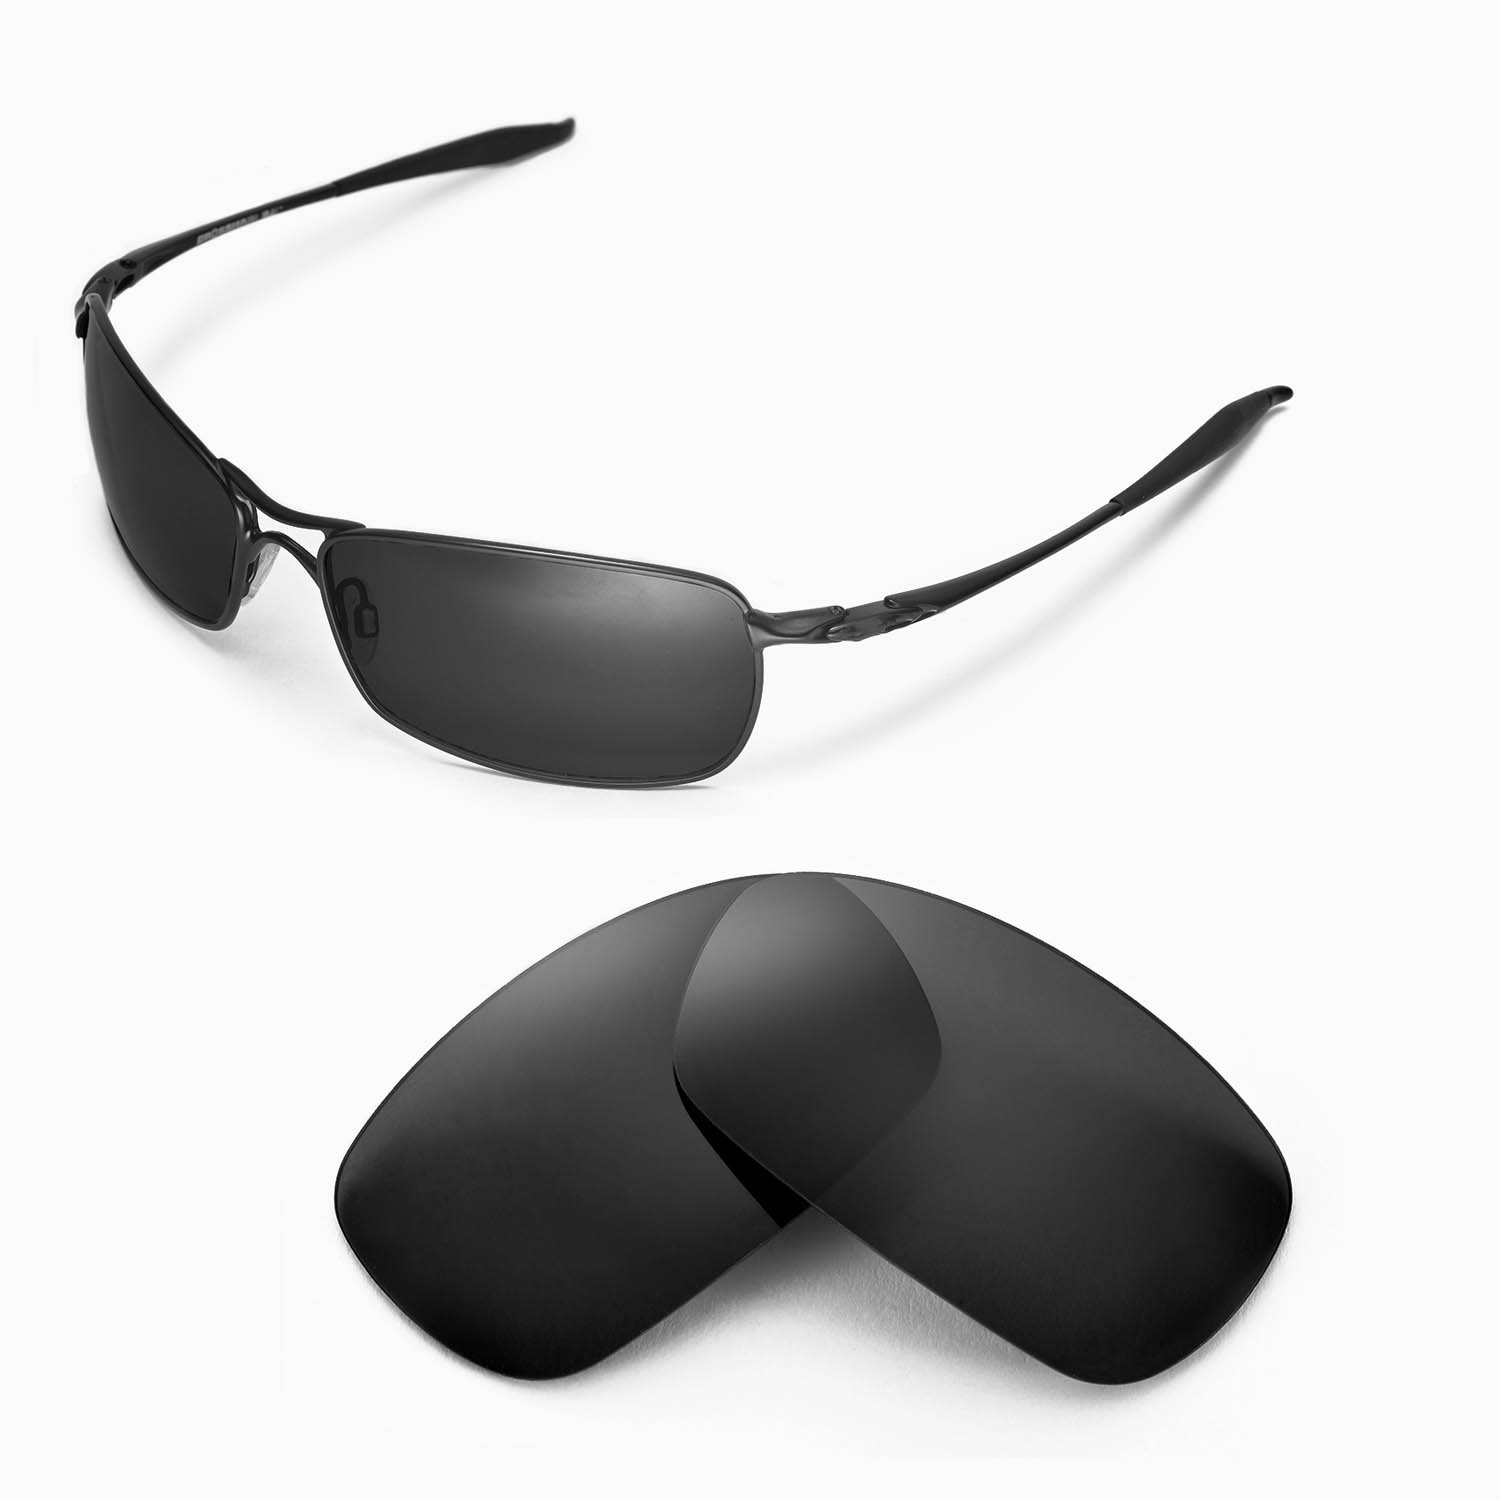 oakley crosshair glasses look alike